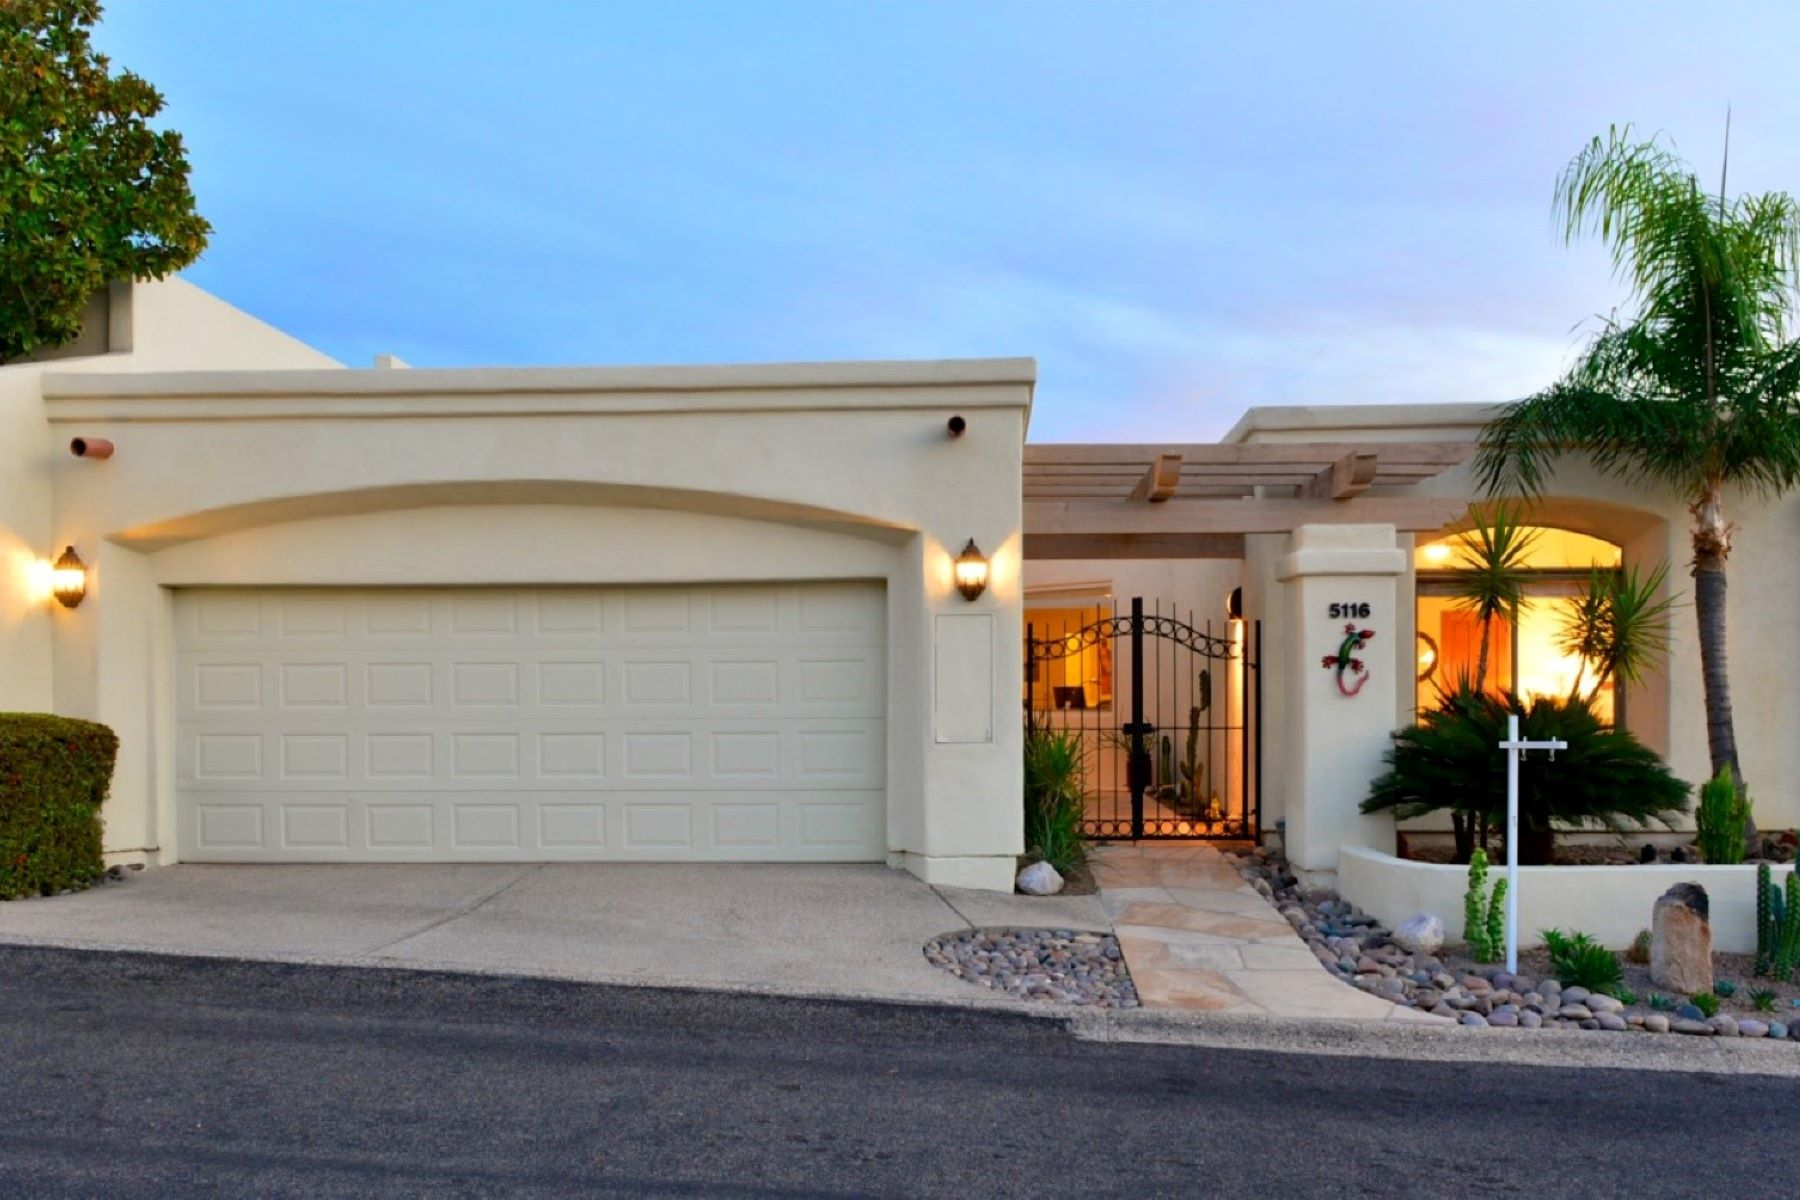 Townhouse for Sale at Nestled in Skyline Country Club Estates 5116 E Calle Brillante, Tucson, Arizona, 85718 United States